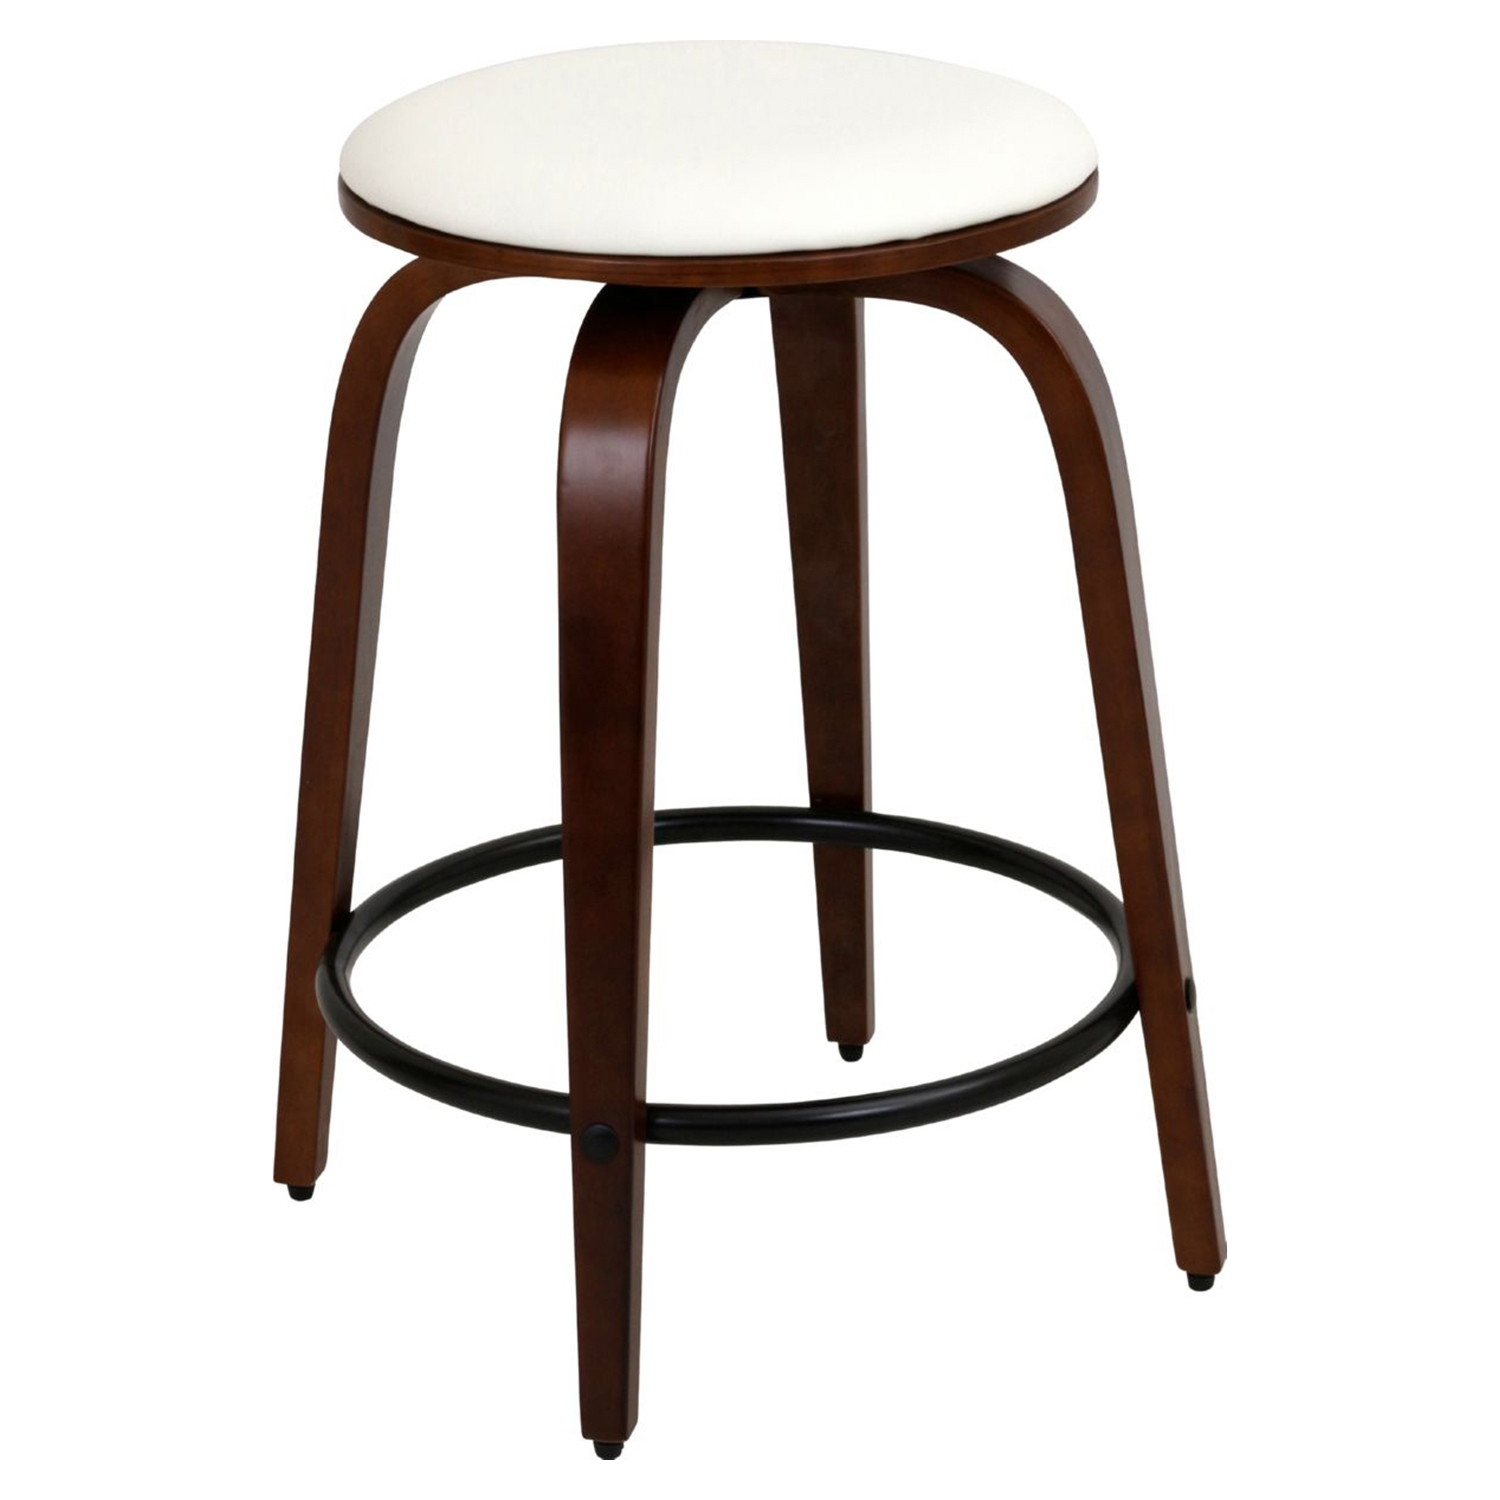 Porto Counter Stool - Swivel, Cherry, White (Set of 2) - LMS-CS-PRT-CH-W2